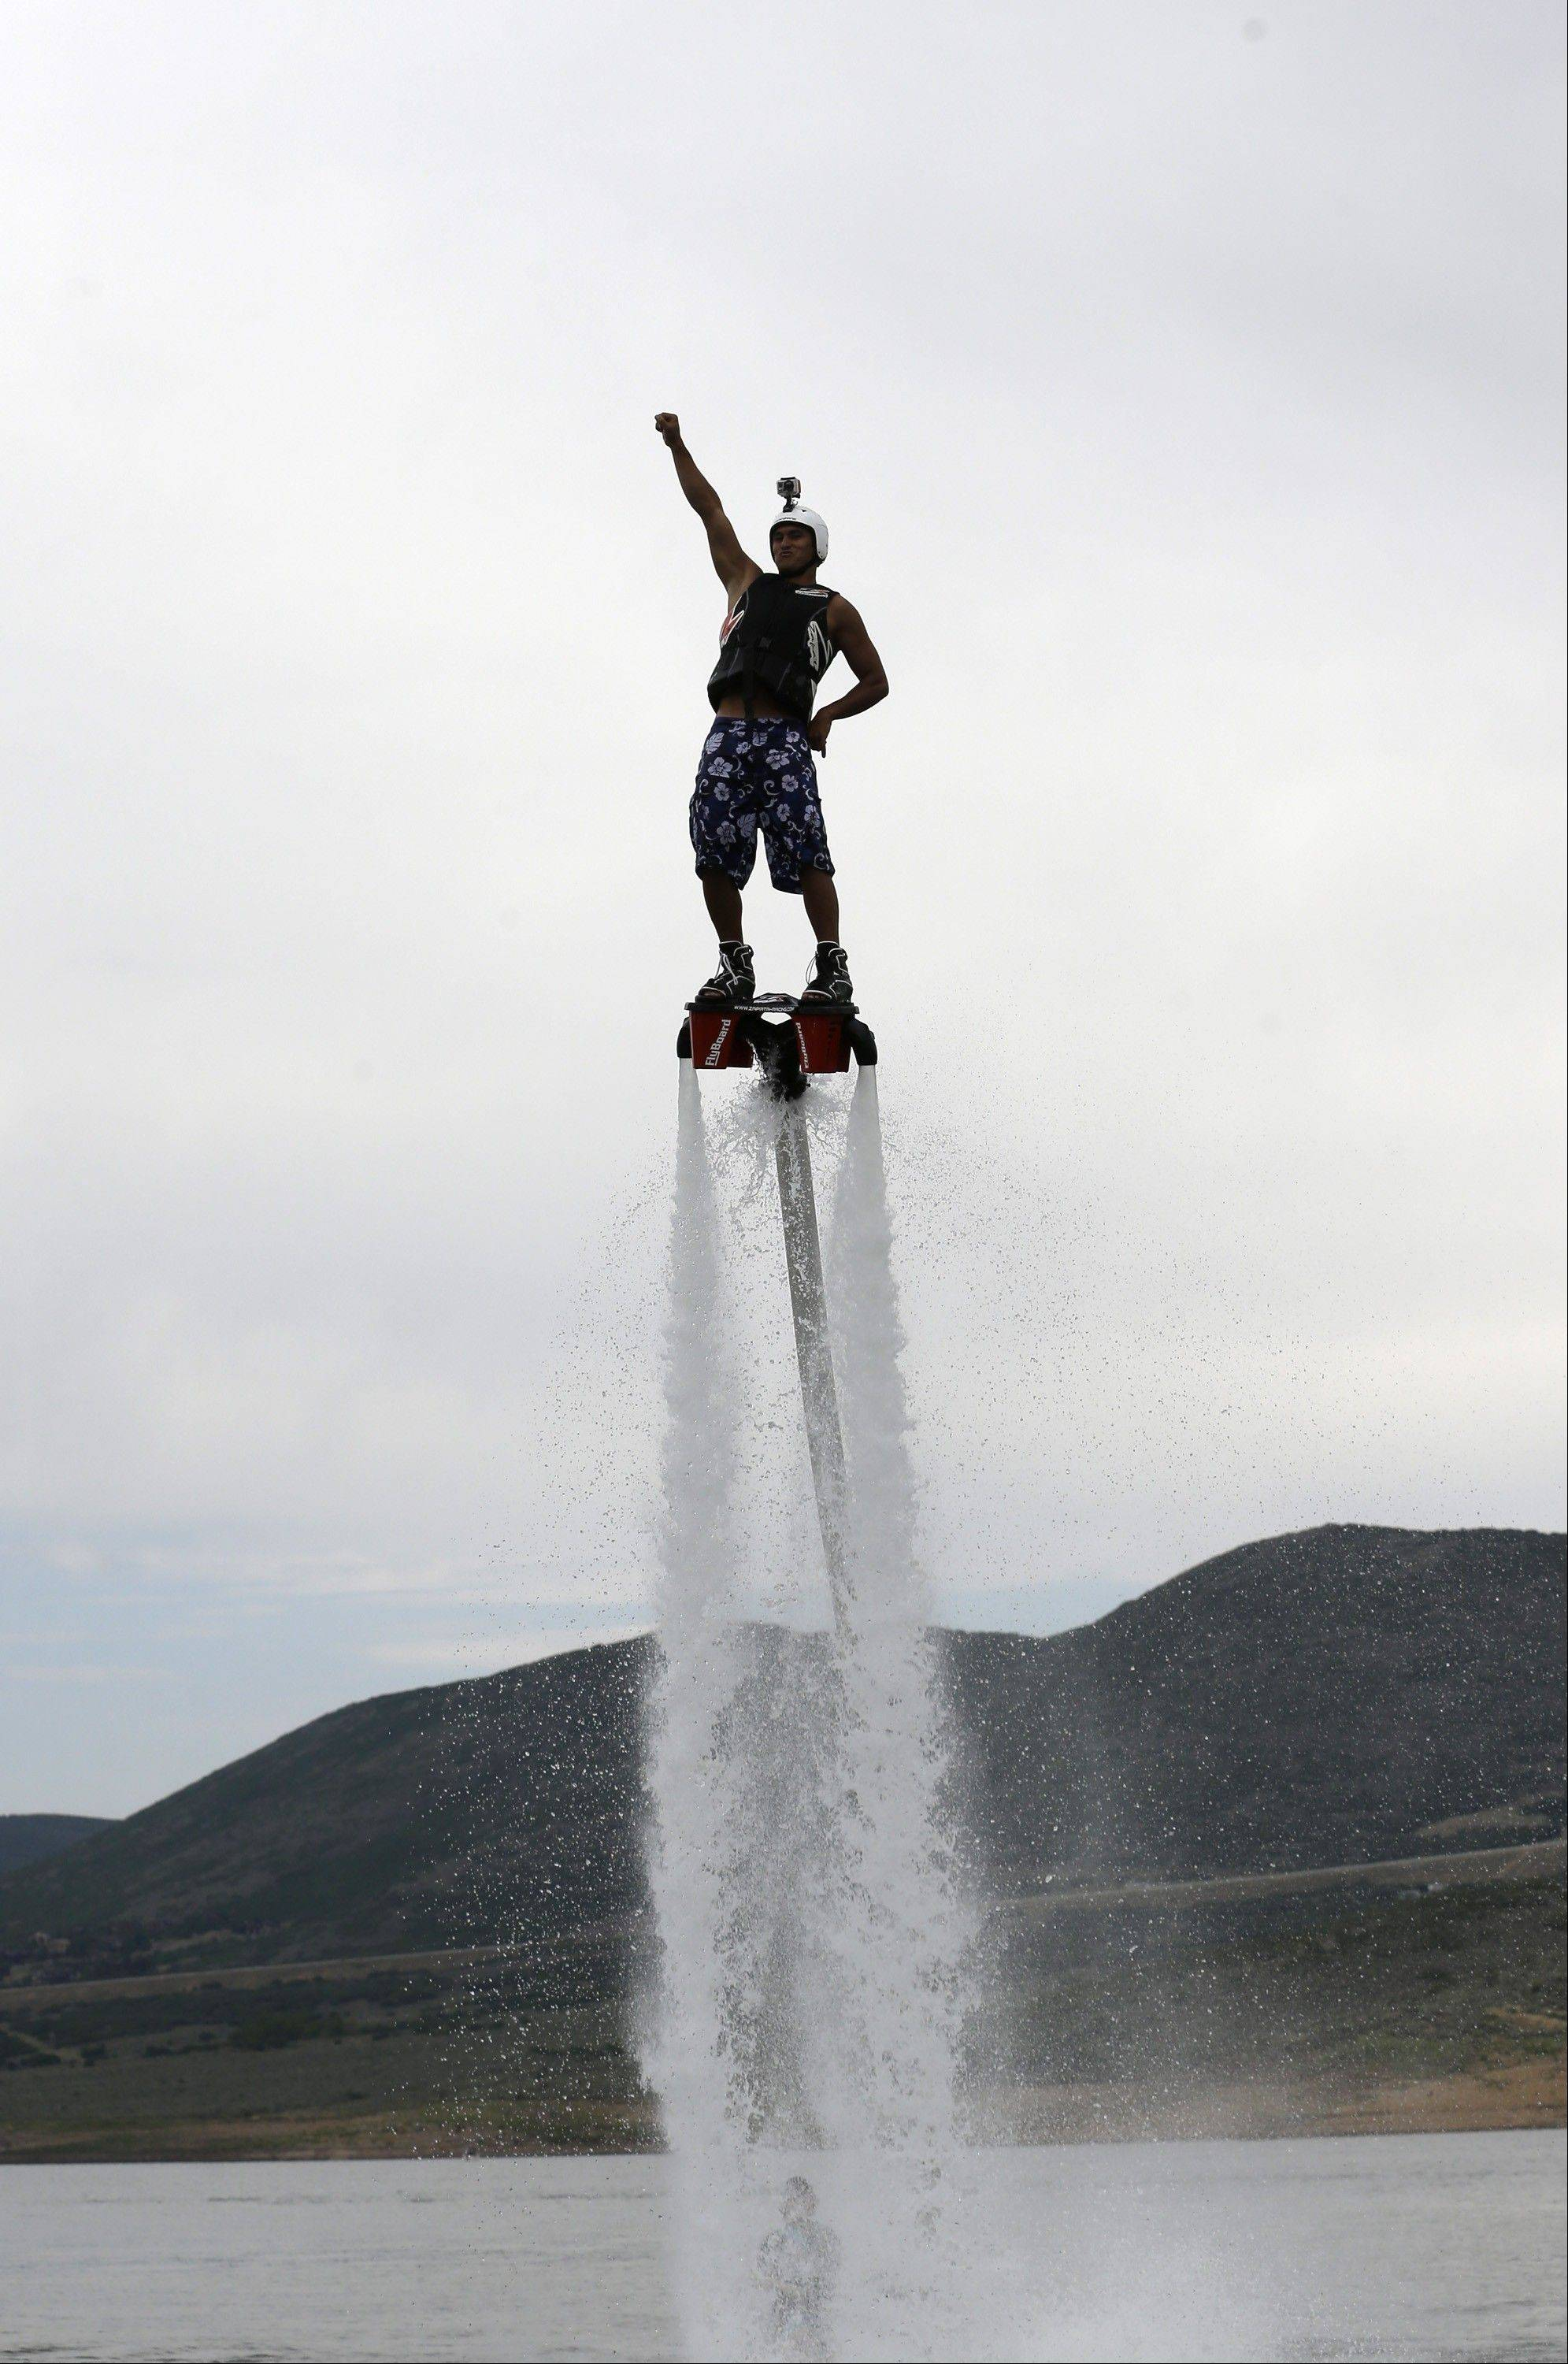 This July 24, 2013, photo, Rocky Mountain Flyboard instructor Jordan Wayment emerges from the water as he demonstrates the flyboard, on the Jordanelle Reservoir, at Jordanelle State Park, Utah. The Flyboard, which looks like a small snowboard attached to a hose, can propel you 45 feet in the air using water pumped from a personal watercraft like a Jet Ski to the base of the board.